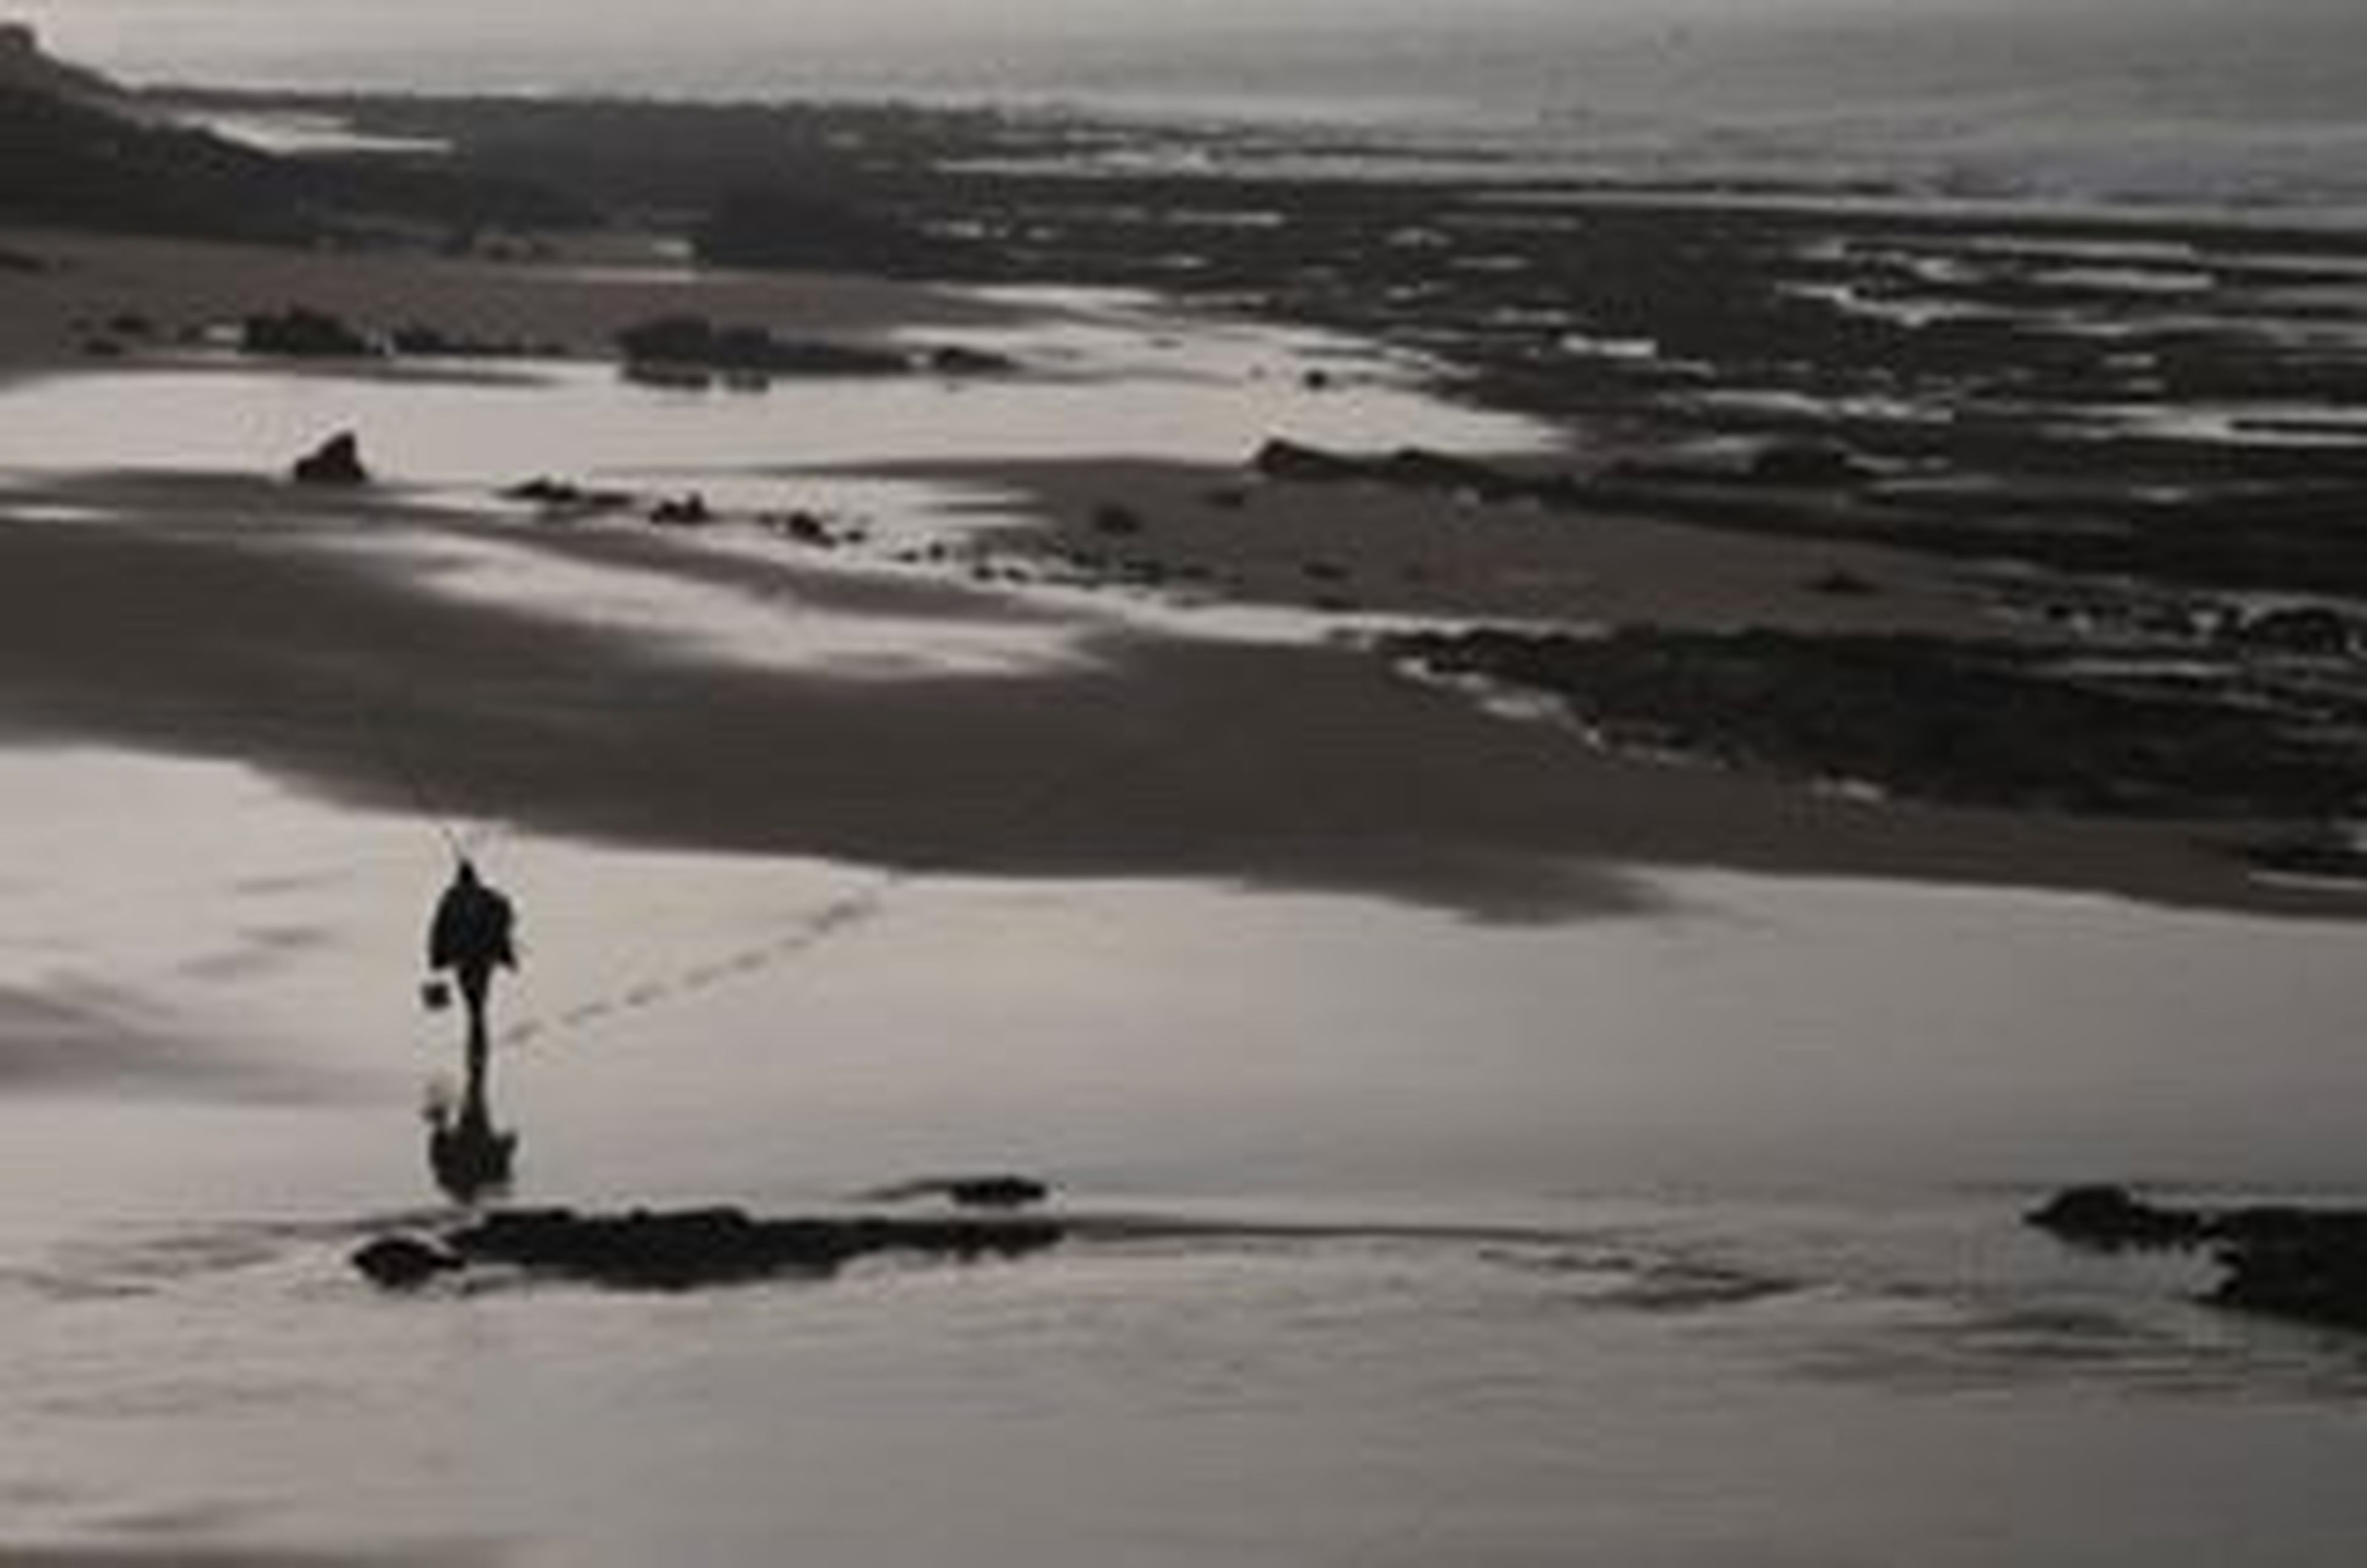 water, sea, beach, lifestyles, leisure activity, shore, tranquil scene, standing, scenics, men, tranquility, wave, full length, nature, walking, silhouette, beauty in nature, rear view